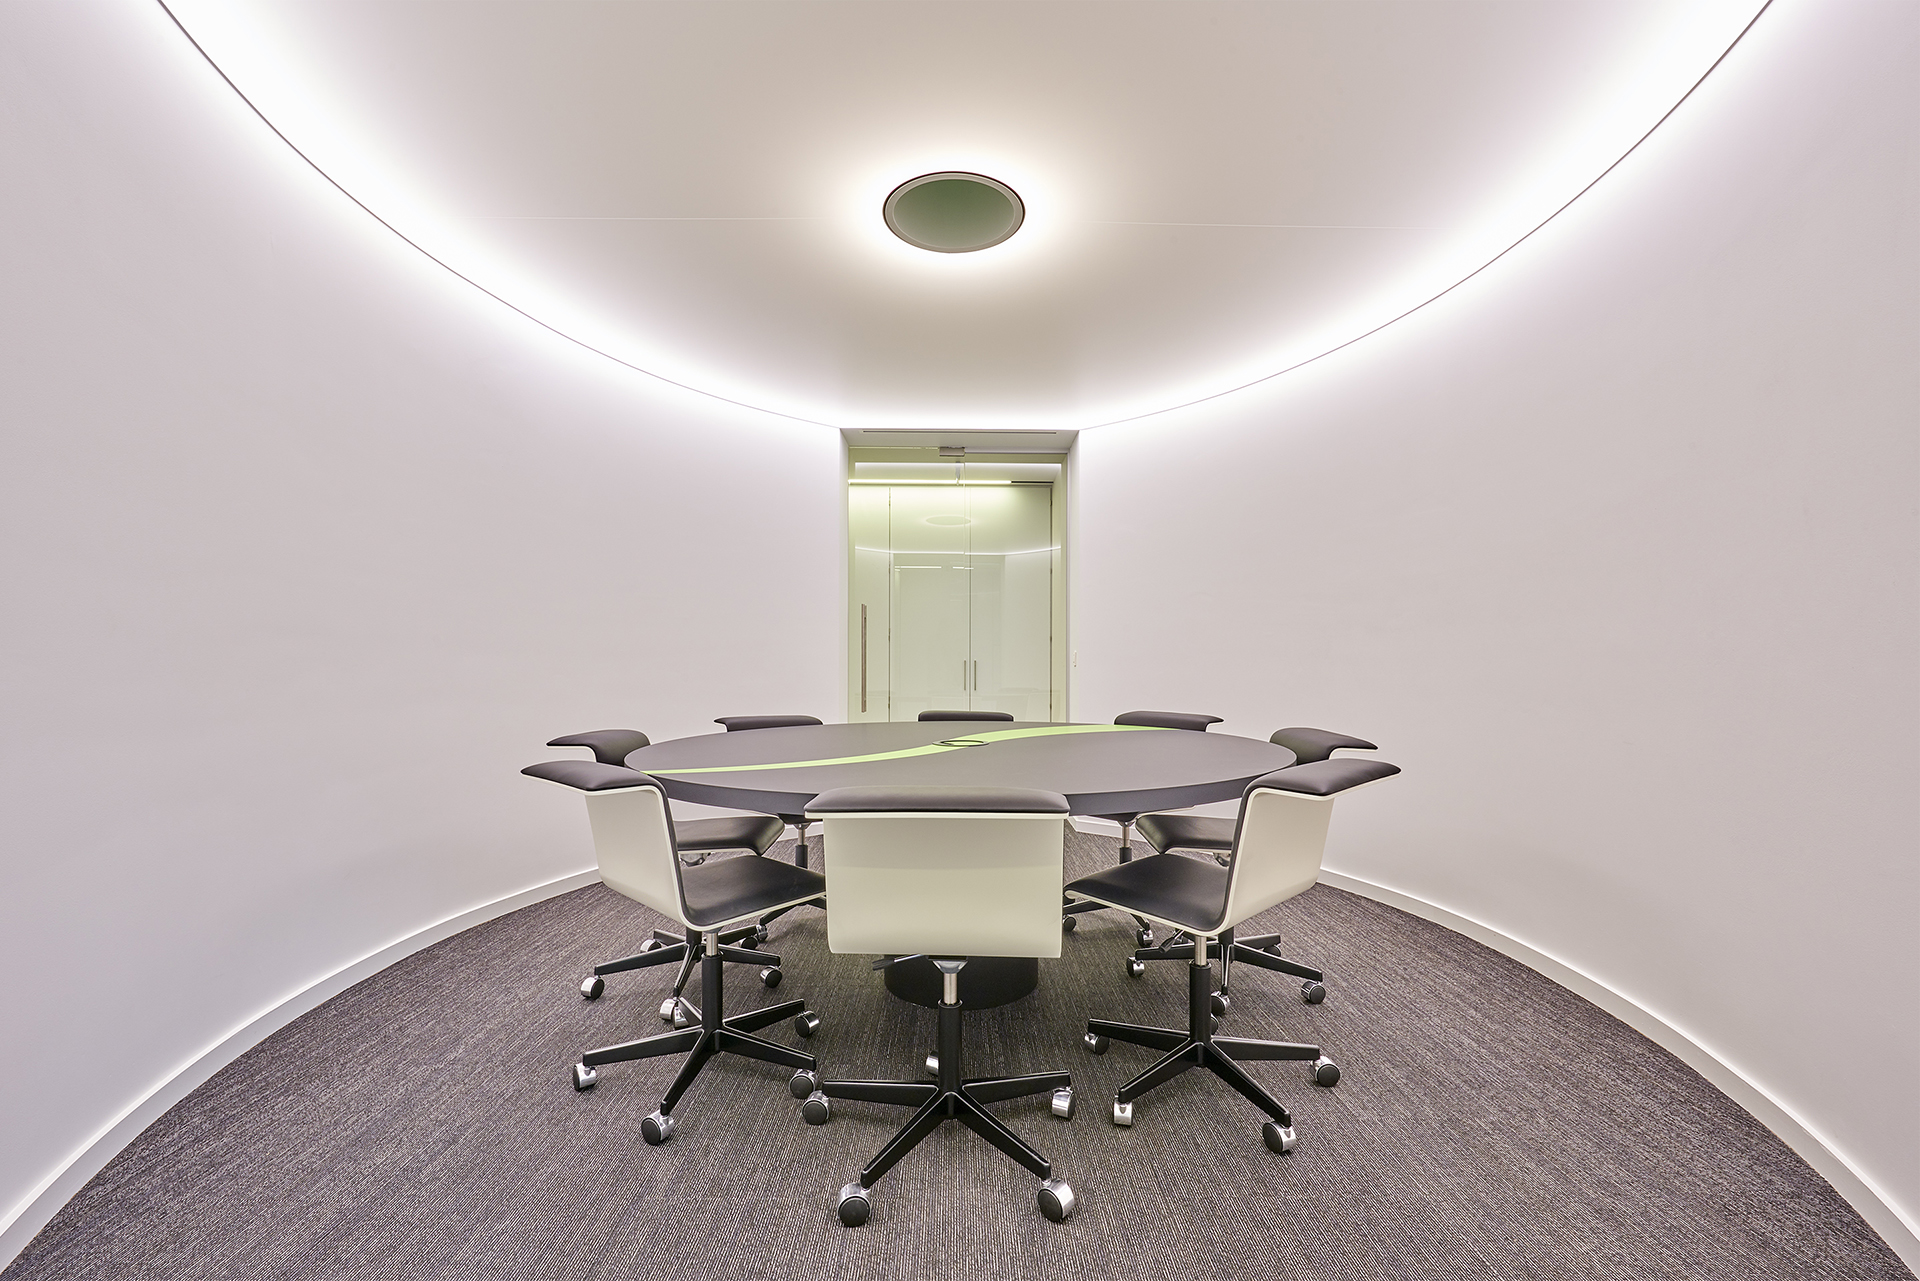 vergaderzaal, conference room, oval room